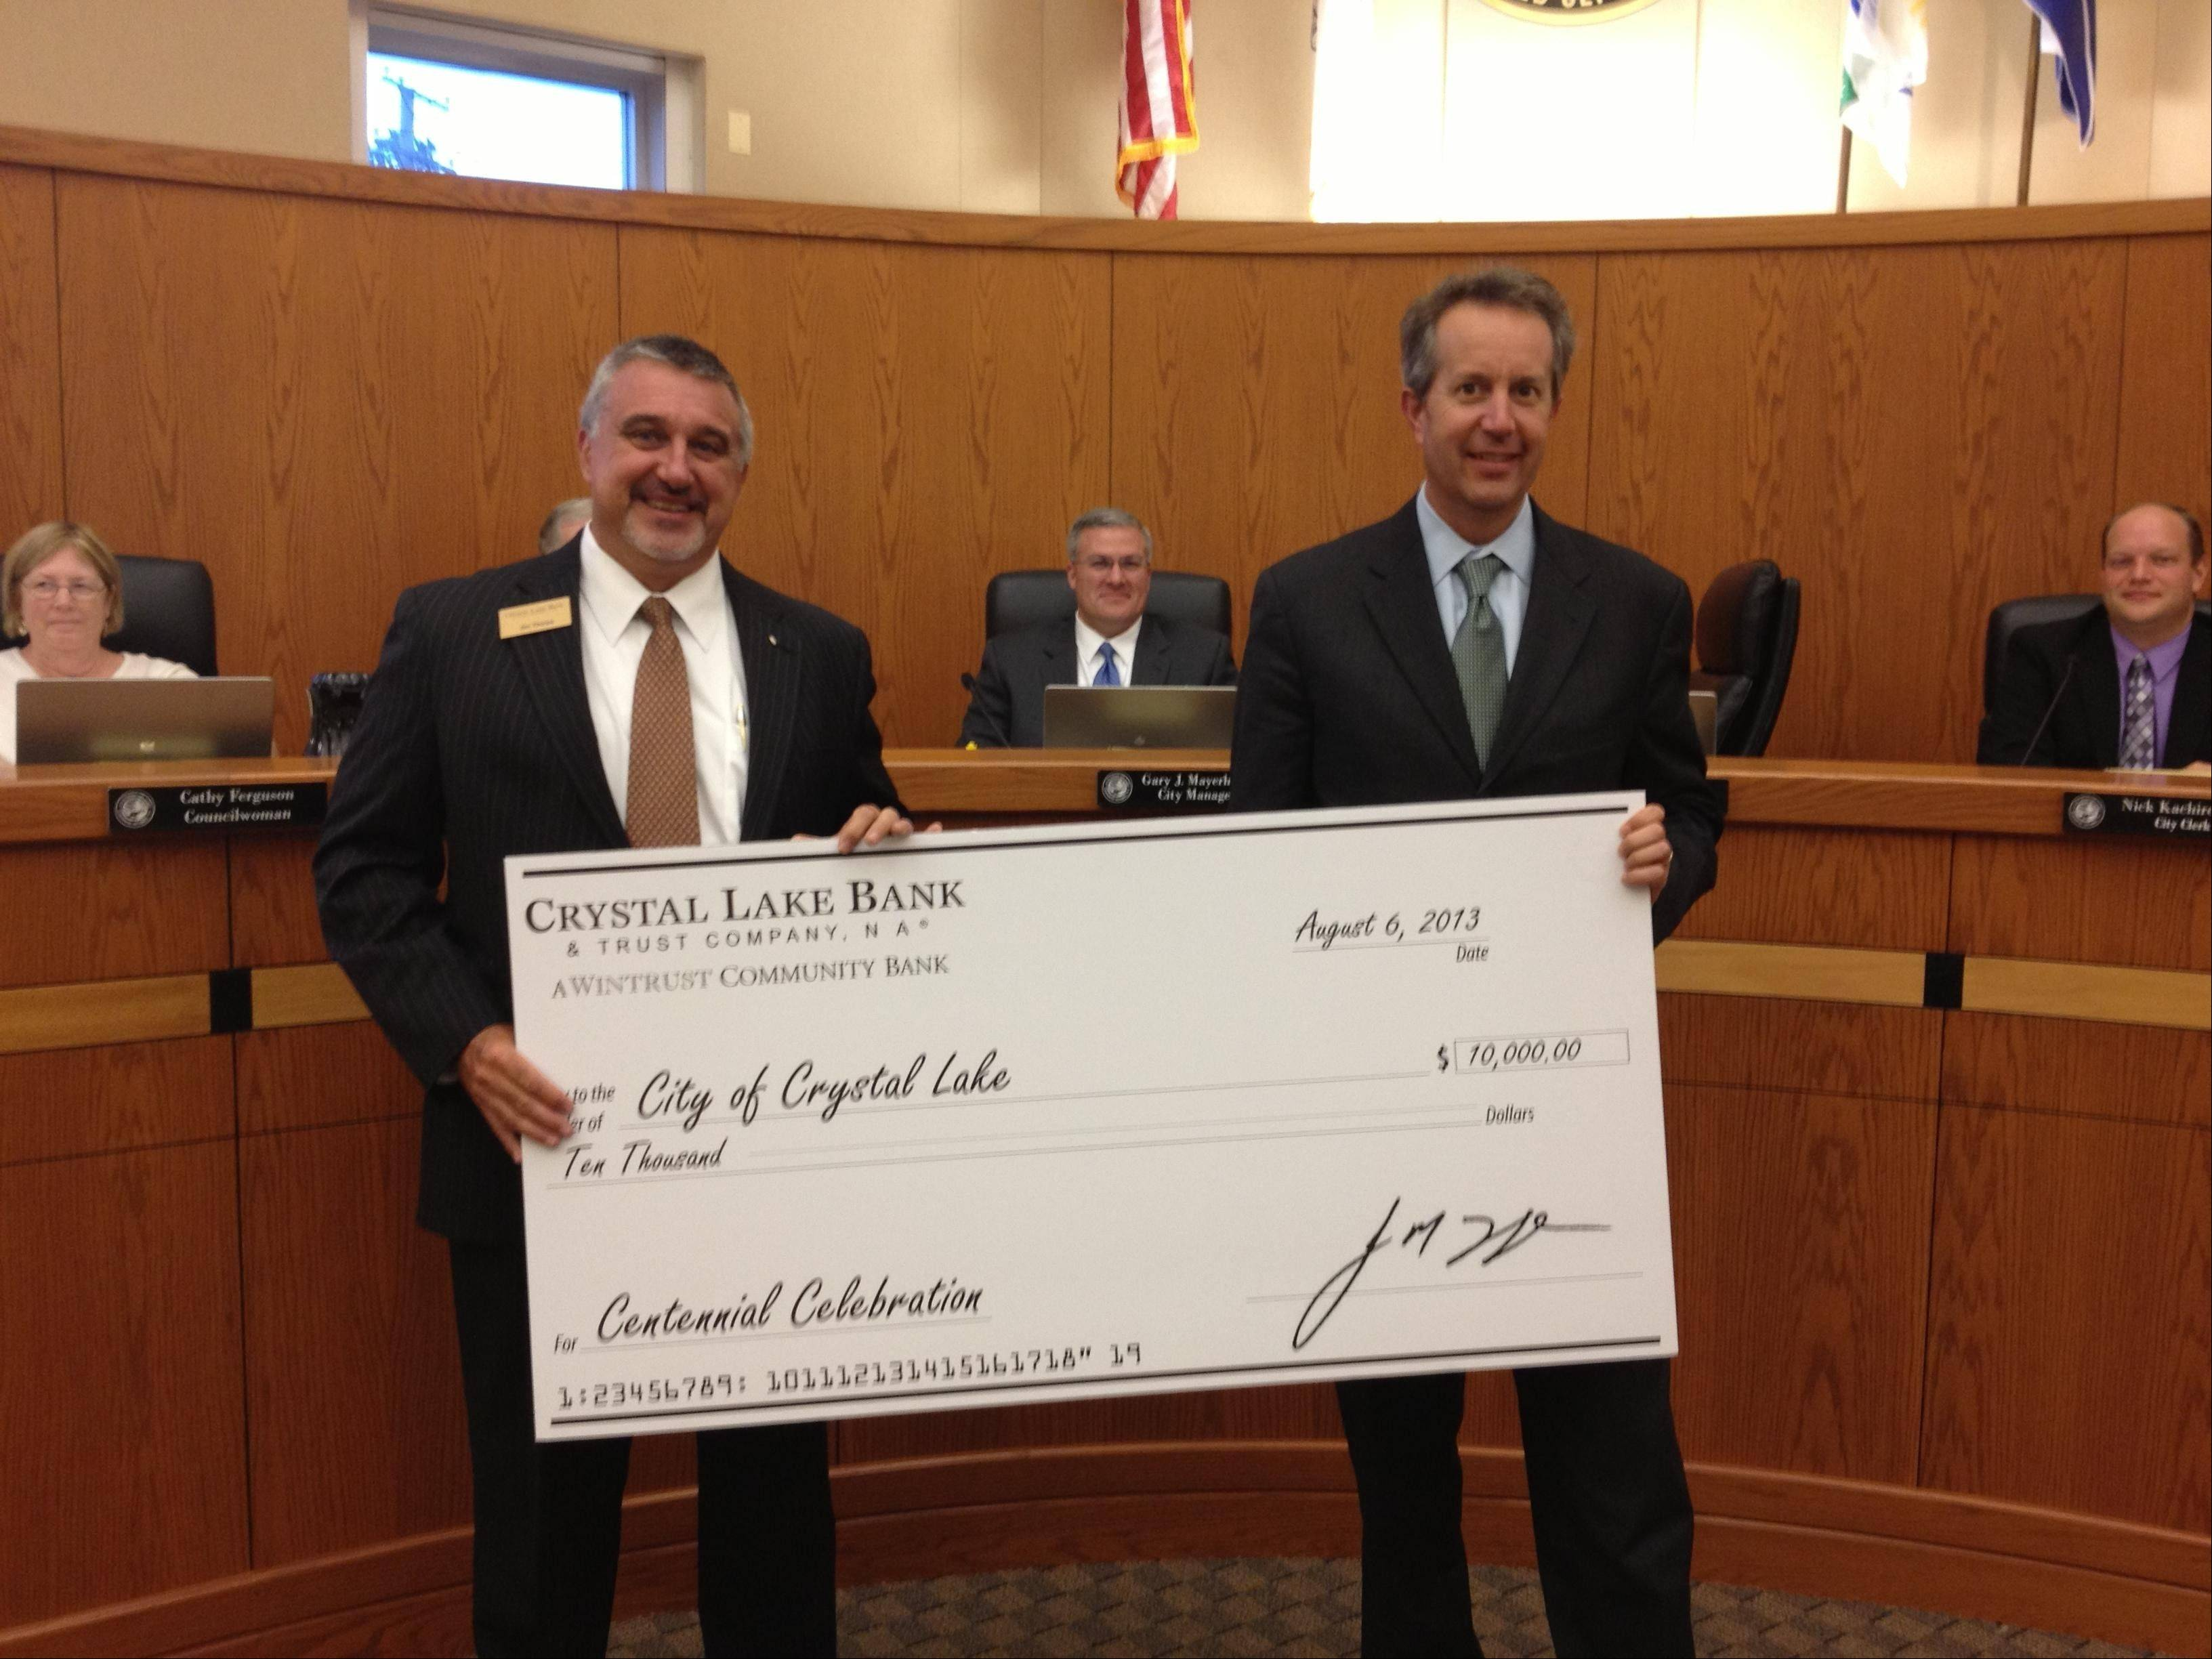 Jim Thorpe, left, president of Crystal Lake Bank & Trust, presents a $10,000 donation for the Crystal Lake's Centennial Celebration to Mayor Aaron Shepley.